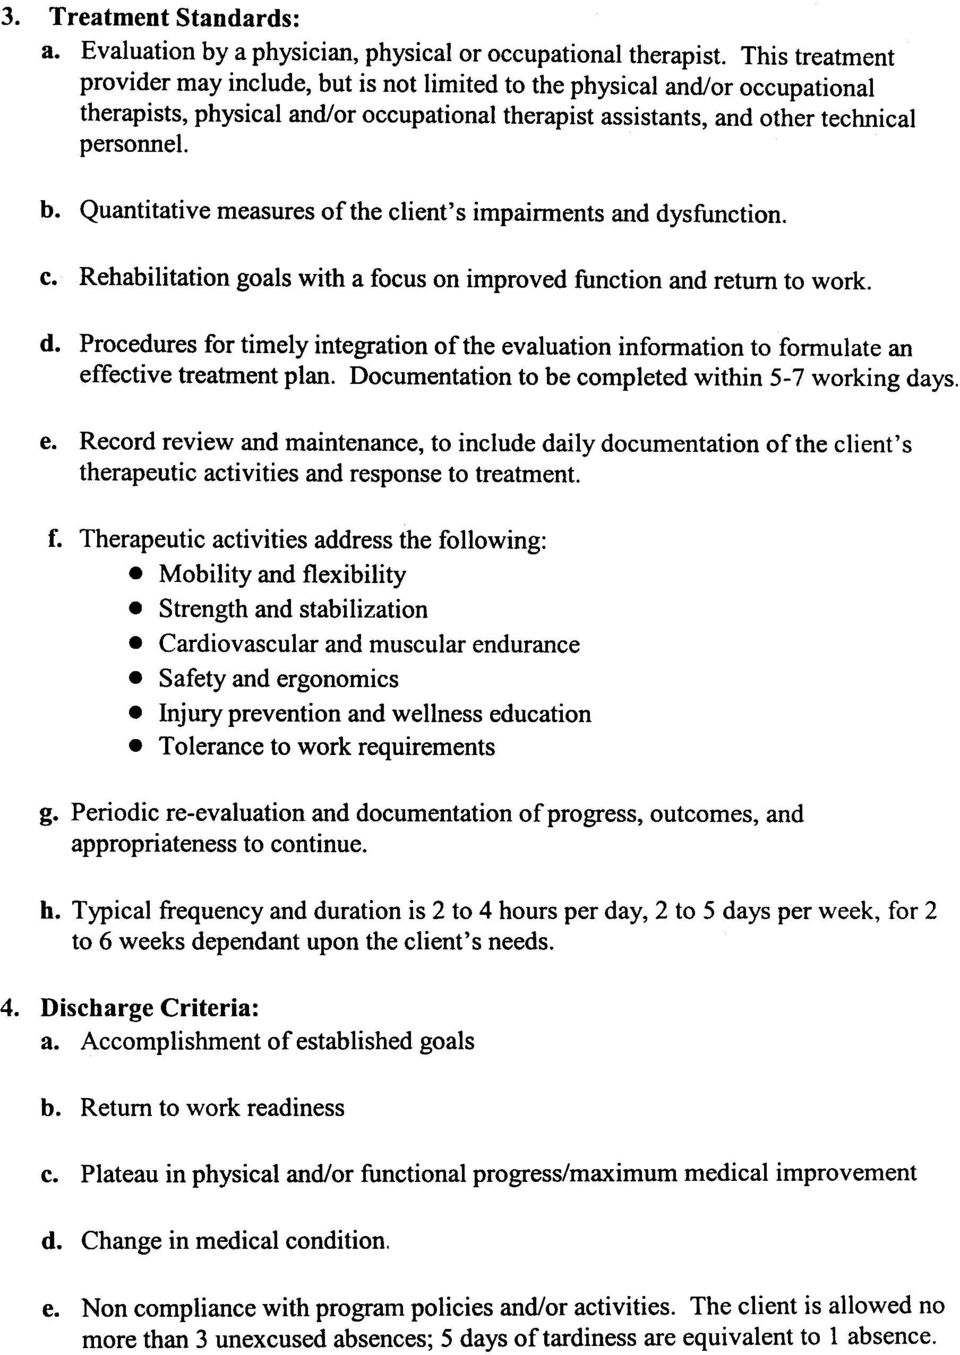 c. Rehabilitation goals with a focus on improved function and return to work. d. Procedures for timely integration of the evaluation information to formulate an effective treatment plan.